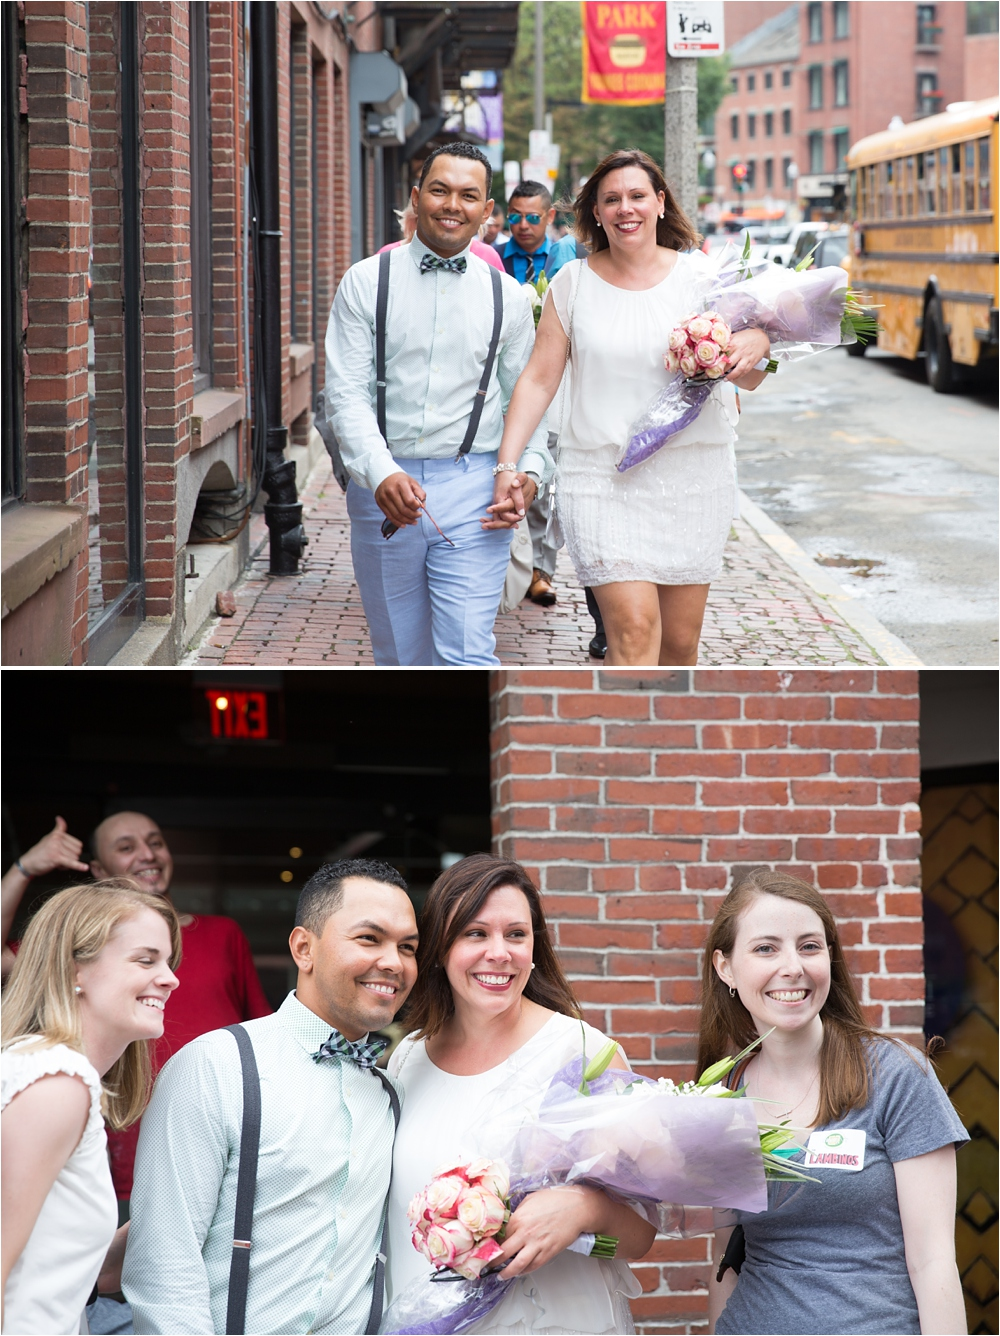 Boston Elopement Photographer, Boston Elopement Photography, Christopher Columbus Park Boston Wedding, Intimate Wedding Boston, Boston intimate wedding photography, small and intimate boston wedding, Mamma Maria Boston Wedding